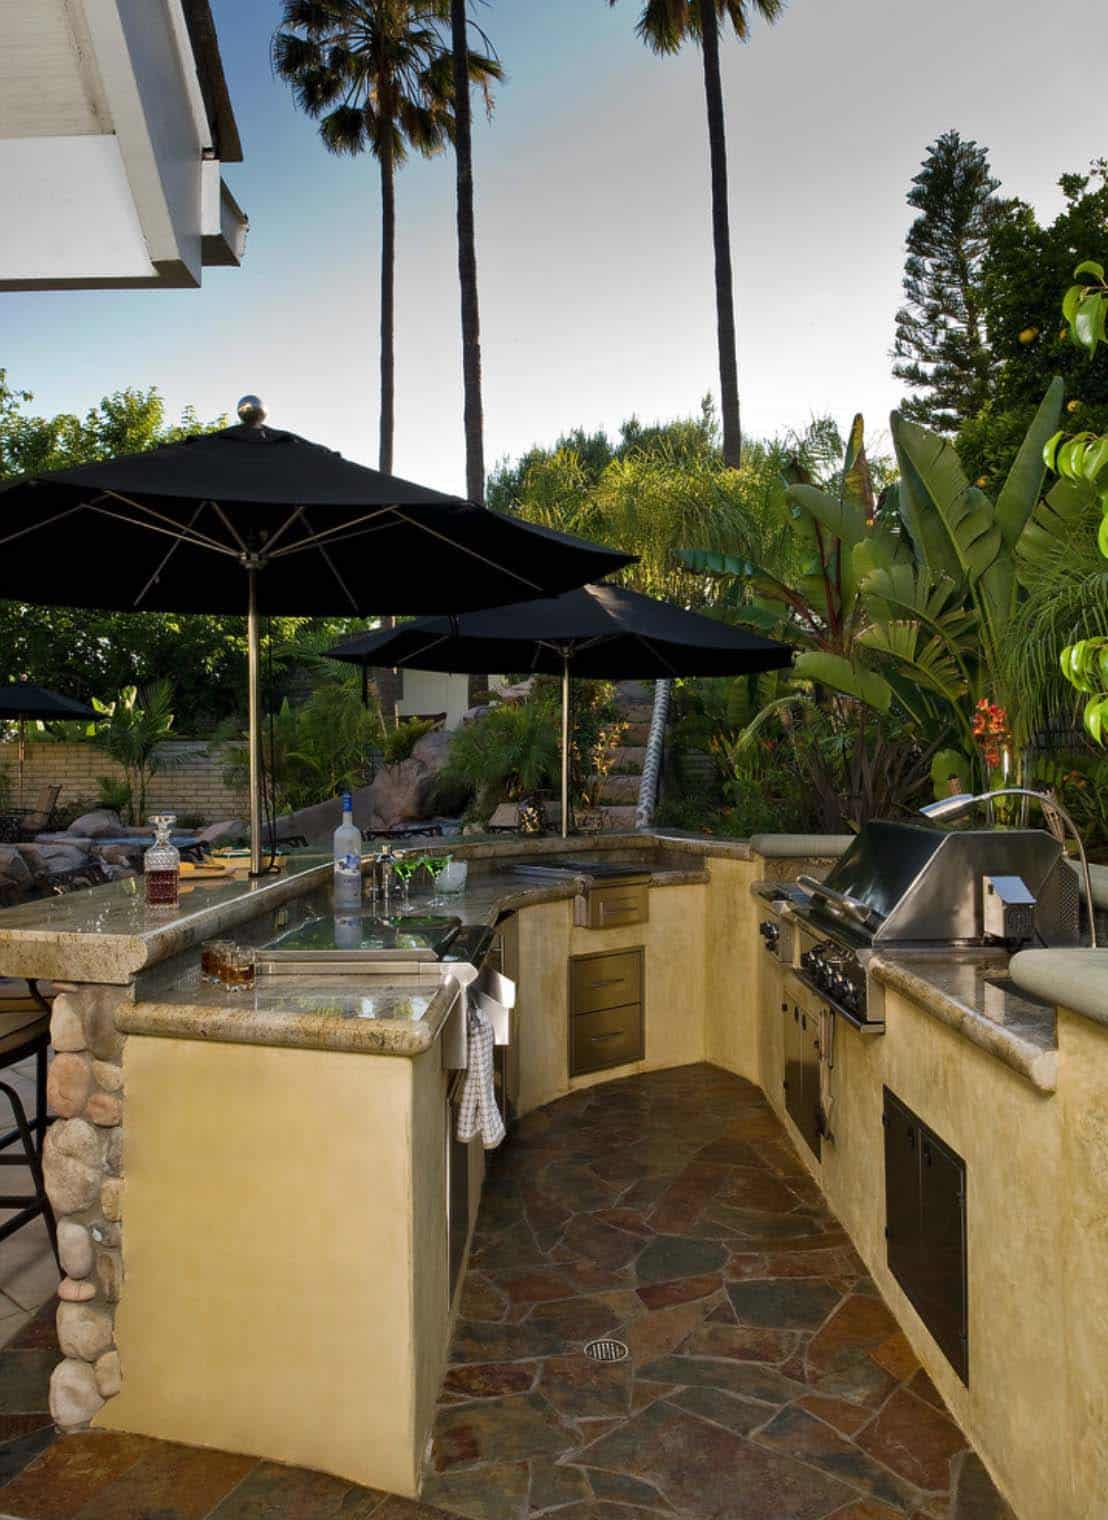 Outdoor Kitchens-Bars Entertaining-17-1 Kindesign.jpg